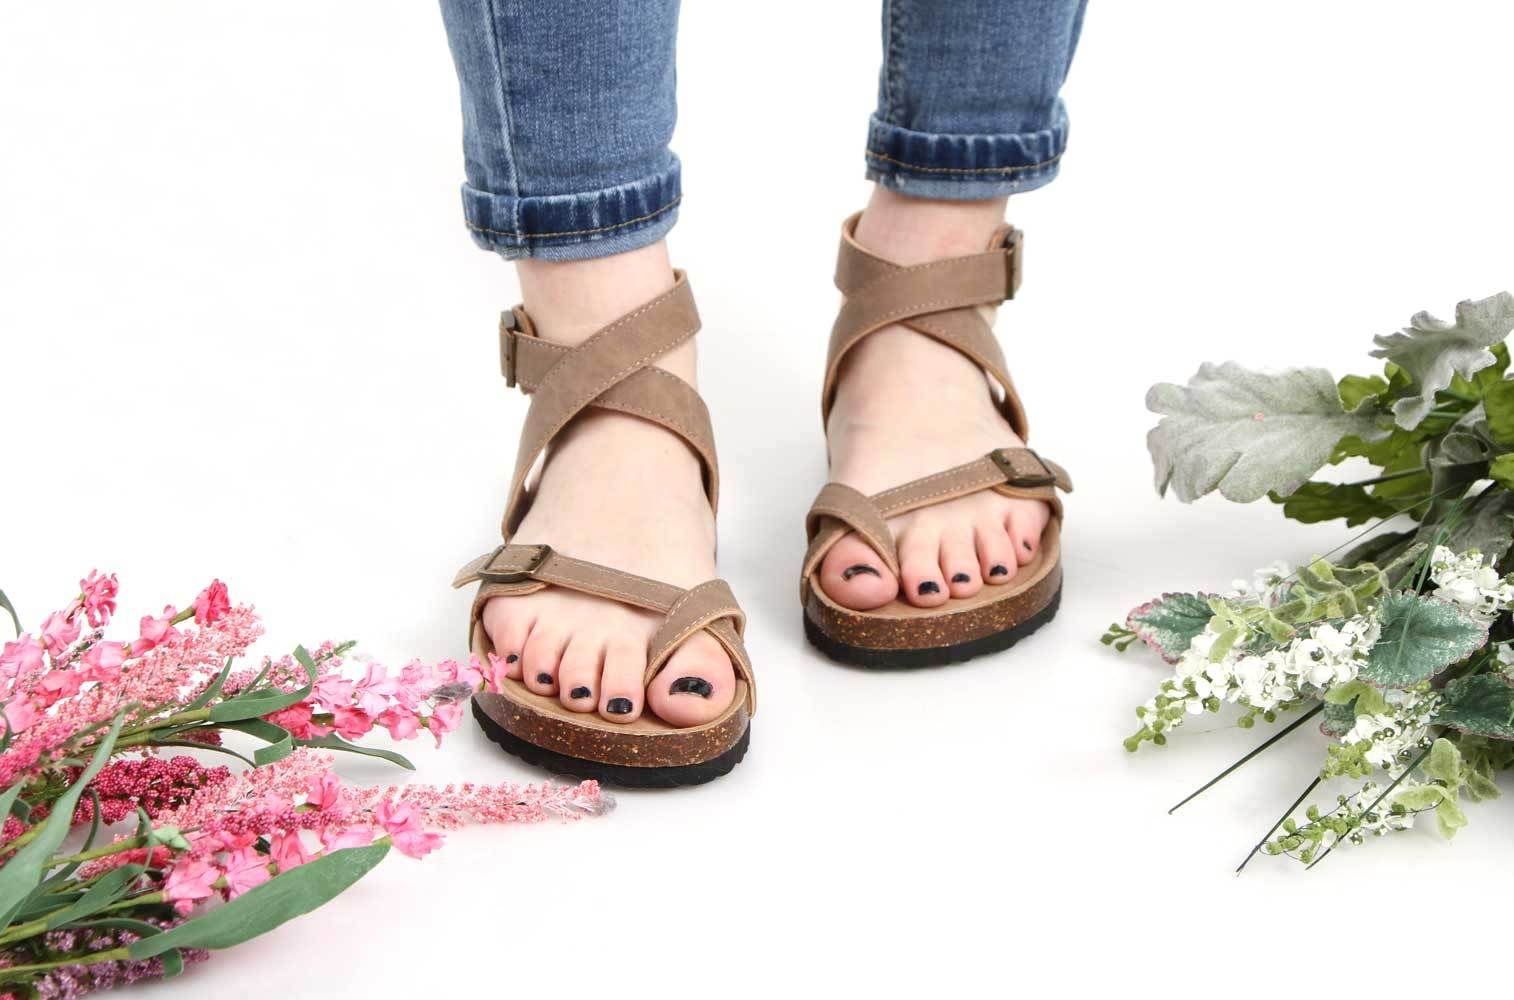 Bork-Ankle-Strap-Sandals-Taupe-1